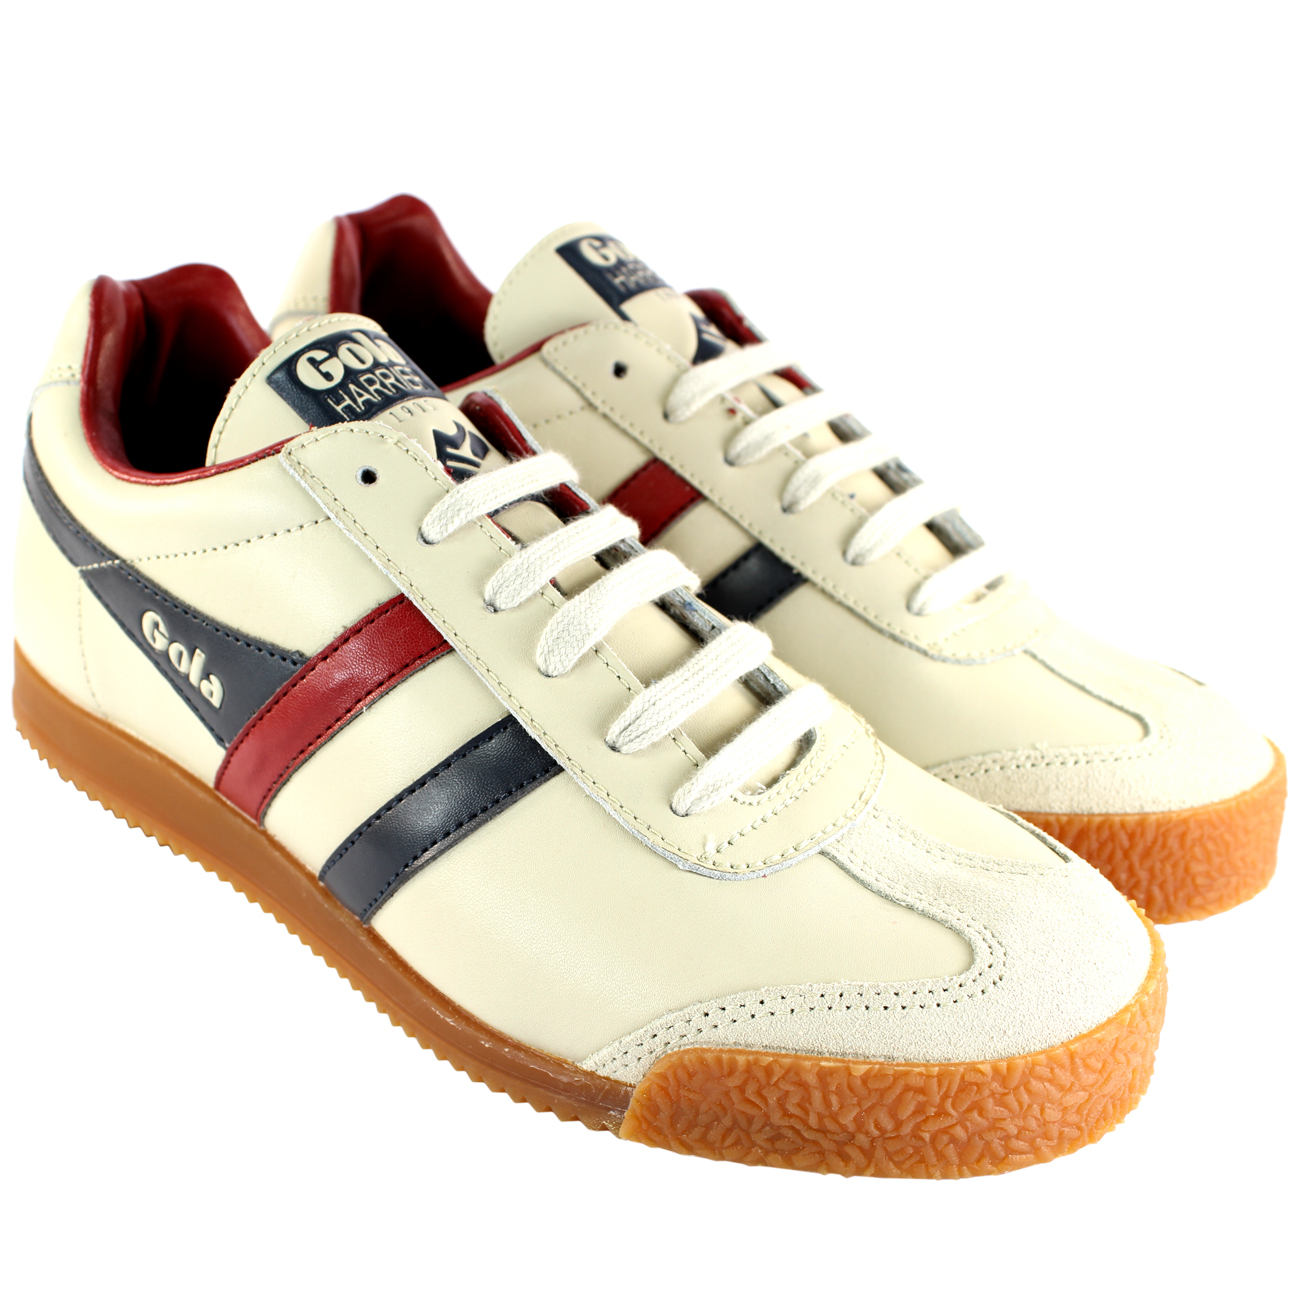 Gola Harrier Leather Trainers